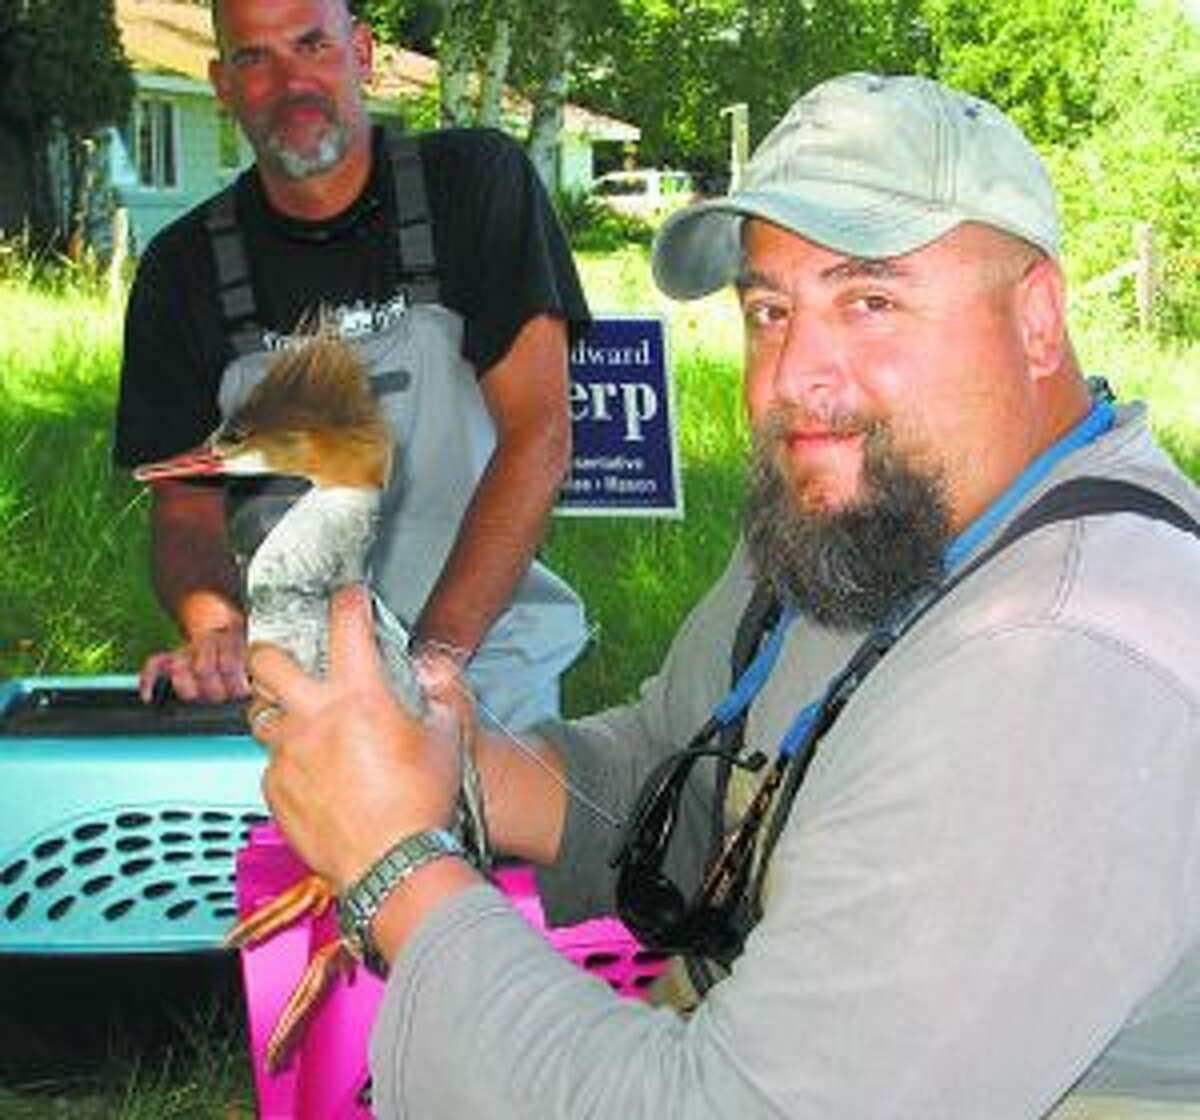 Tom Thorr (back) and Tim Reznich (front) catch mergansers for the Crystal Lake and Watershed Association as part of an effort to reduce swimmer's itch in Crystal Lake.